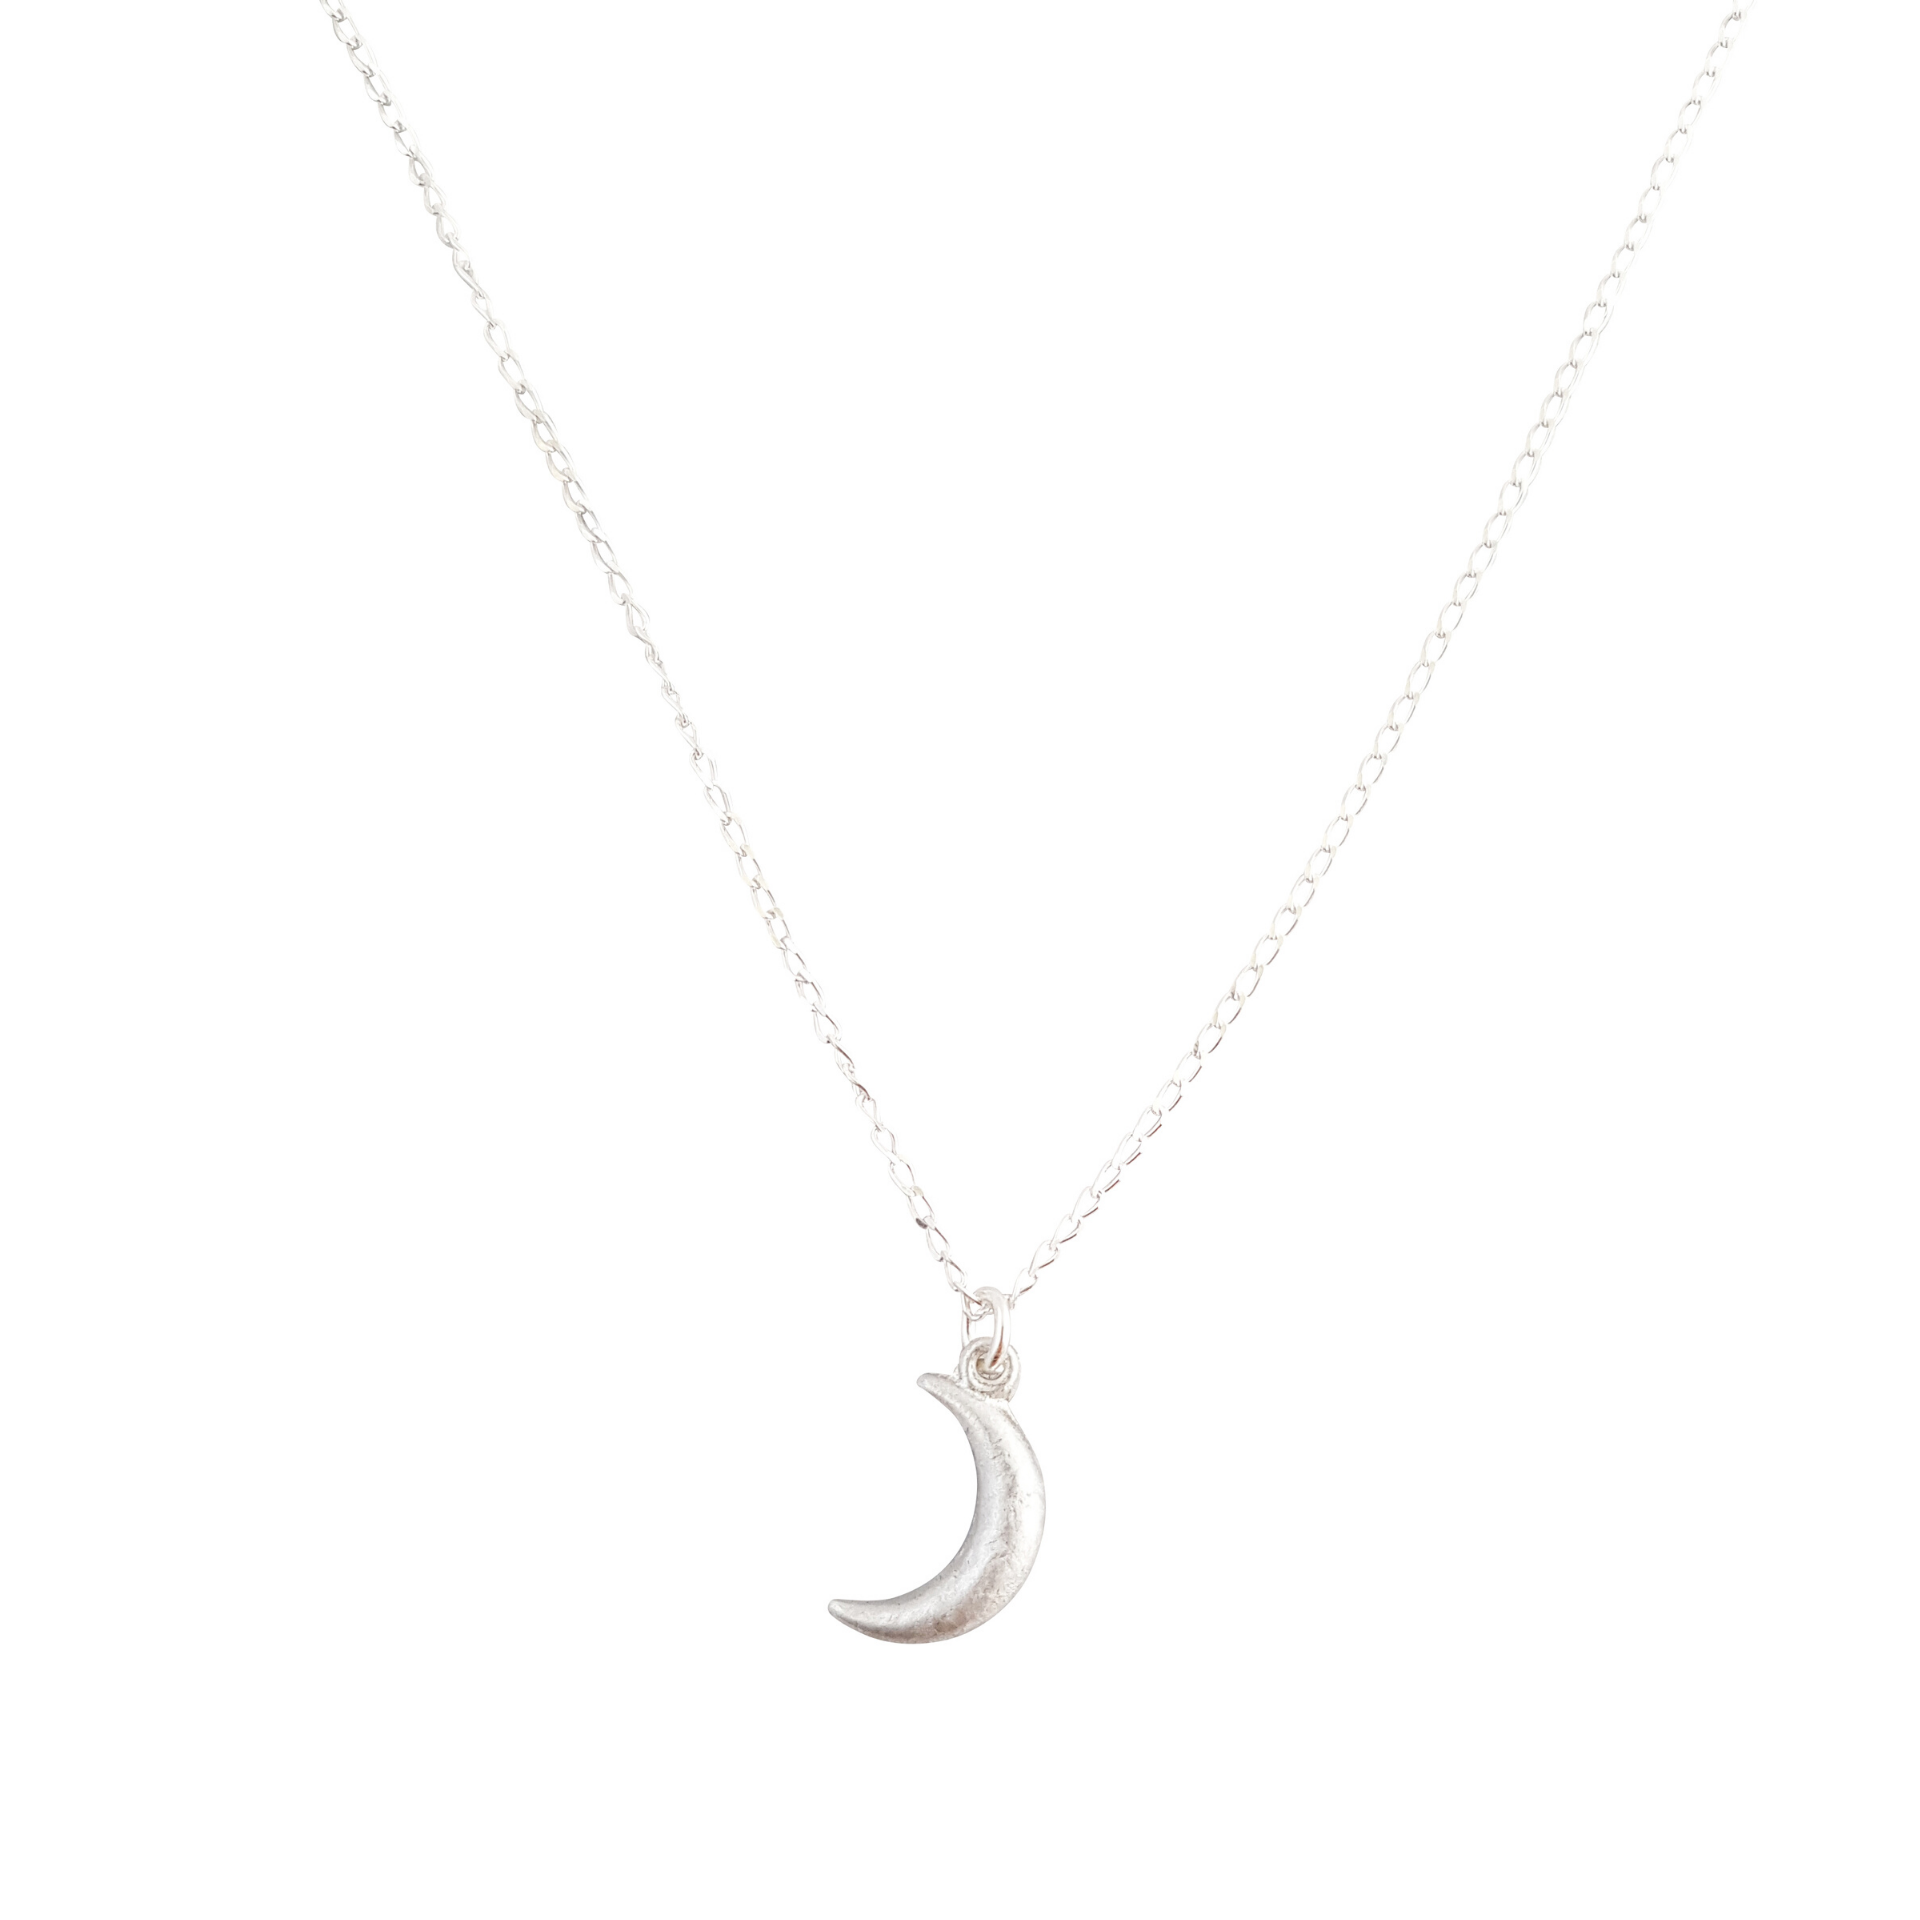 LOVEbomb Crescent Moon Pendant on Sterling Silver Chain